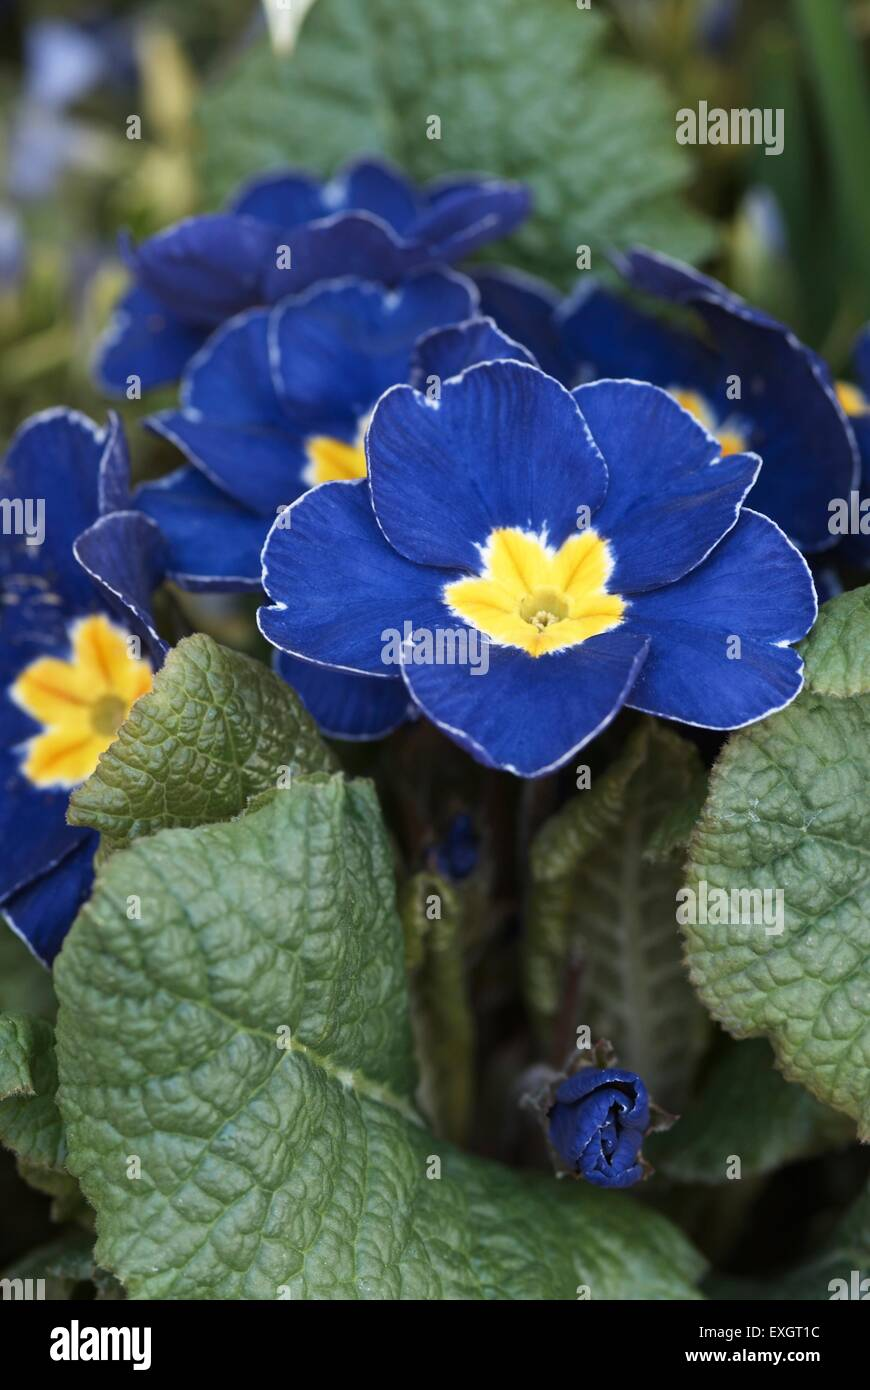 Blue flowers with yellow centre stock photos blue flowers with primula vulgaris primrose blue flowers with yellow centre close up mightylinksfo